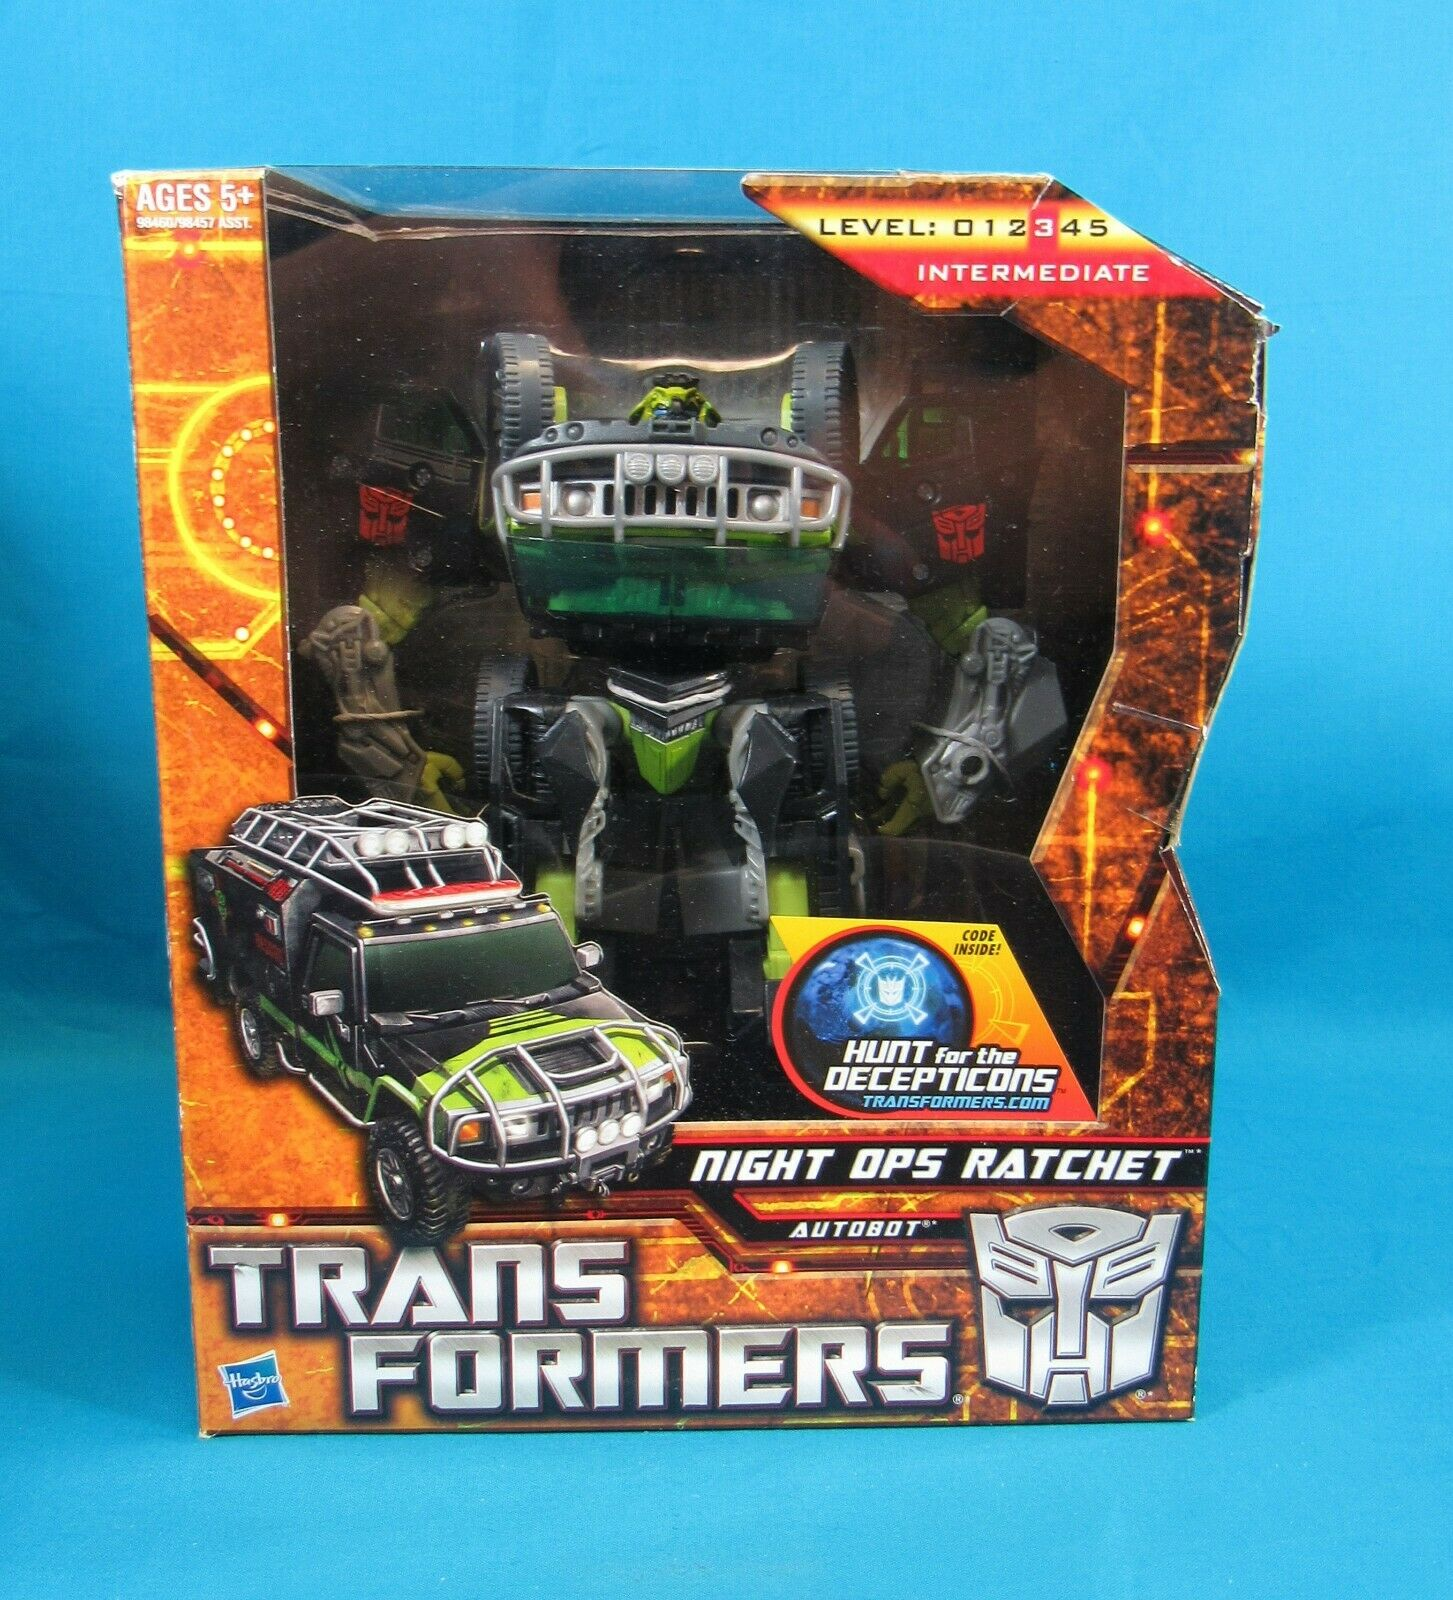 Hasbro Transformers Voyager Class Night Ops Ratchet 2010 New in Box